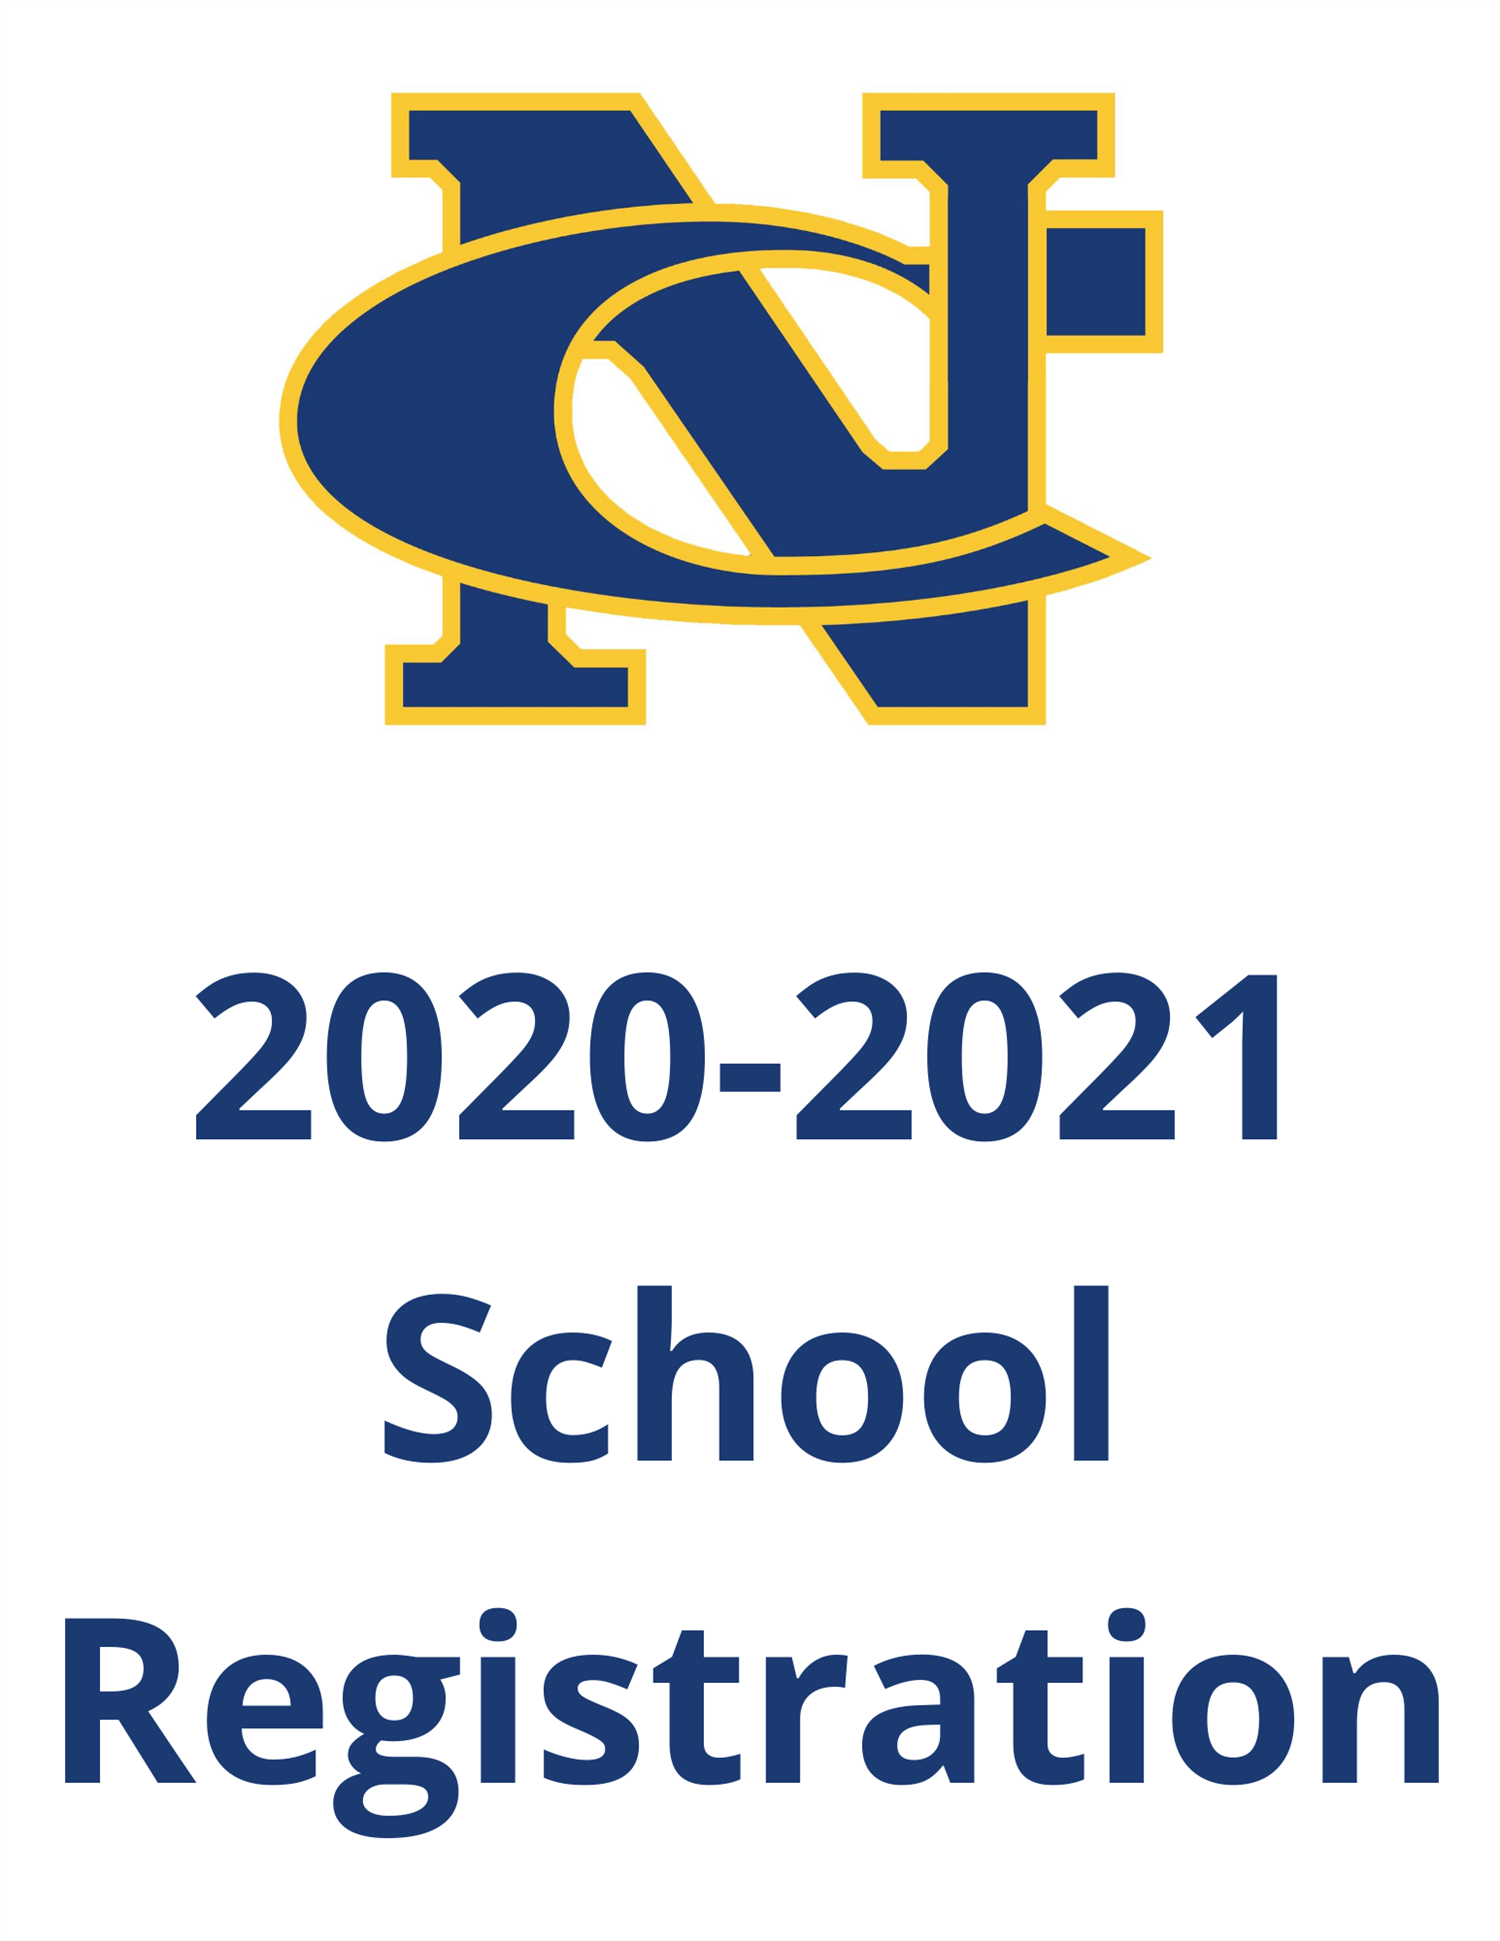 2020-2021 School Registration